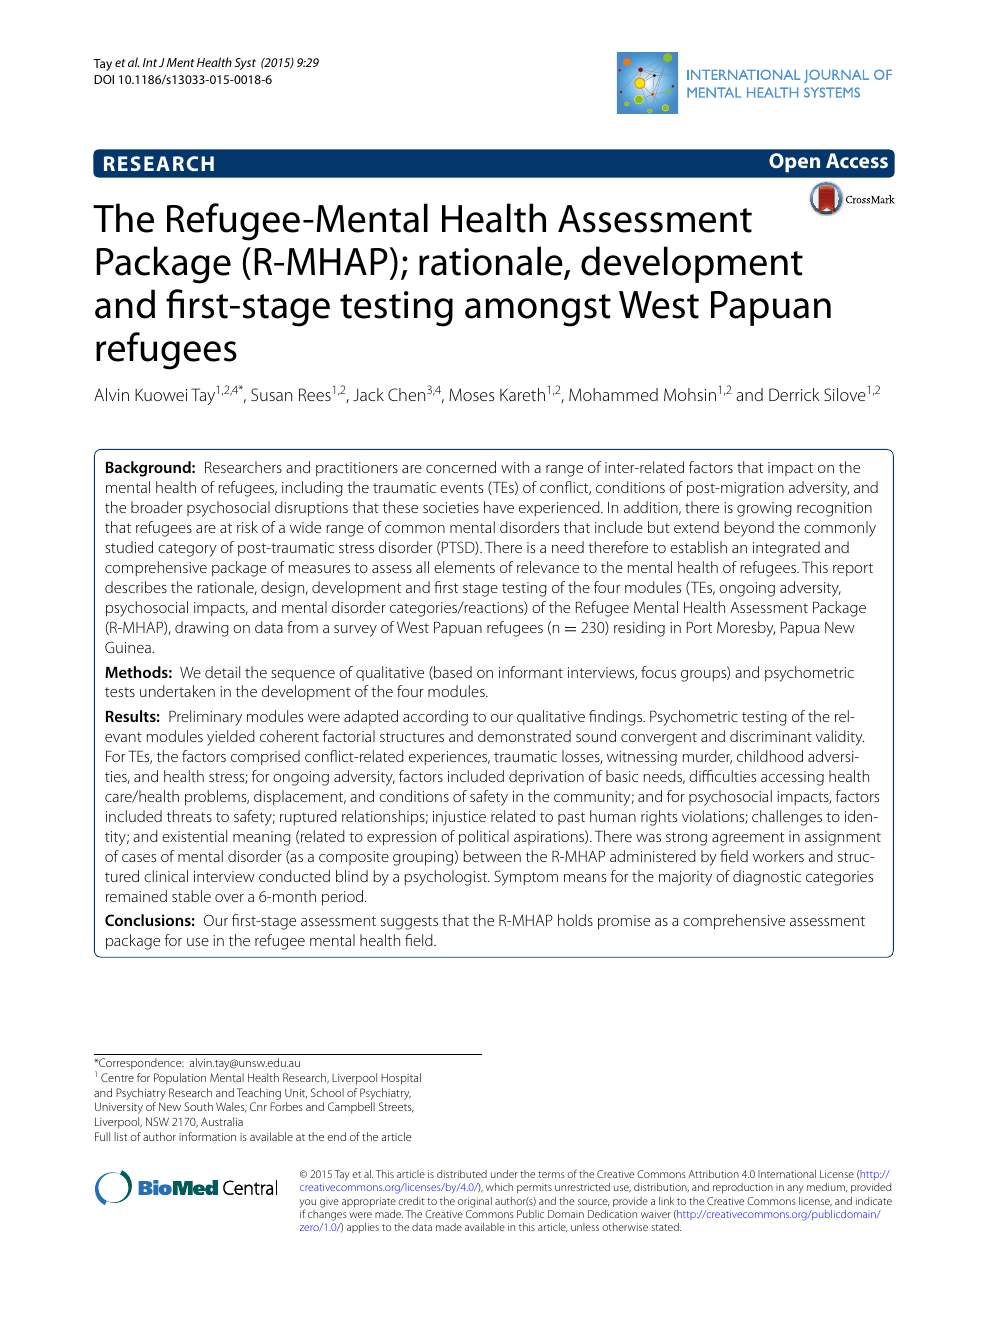 The Refugee Mental Health Assessment Package R Mhap Rationale Development And First Stage Testing Amongst West Papuan Refugees Topic Of Research Paper In Psychology Download Scholarly Article Pdf And Read For Free On Cyberleninka